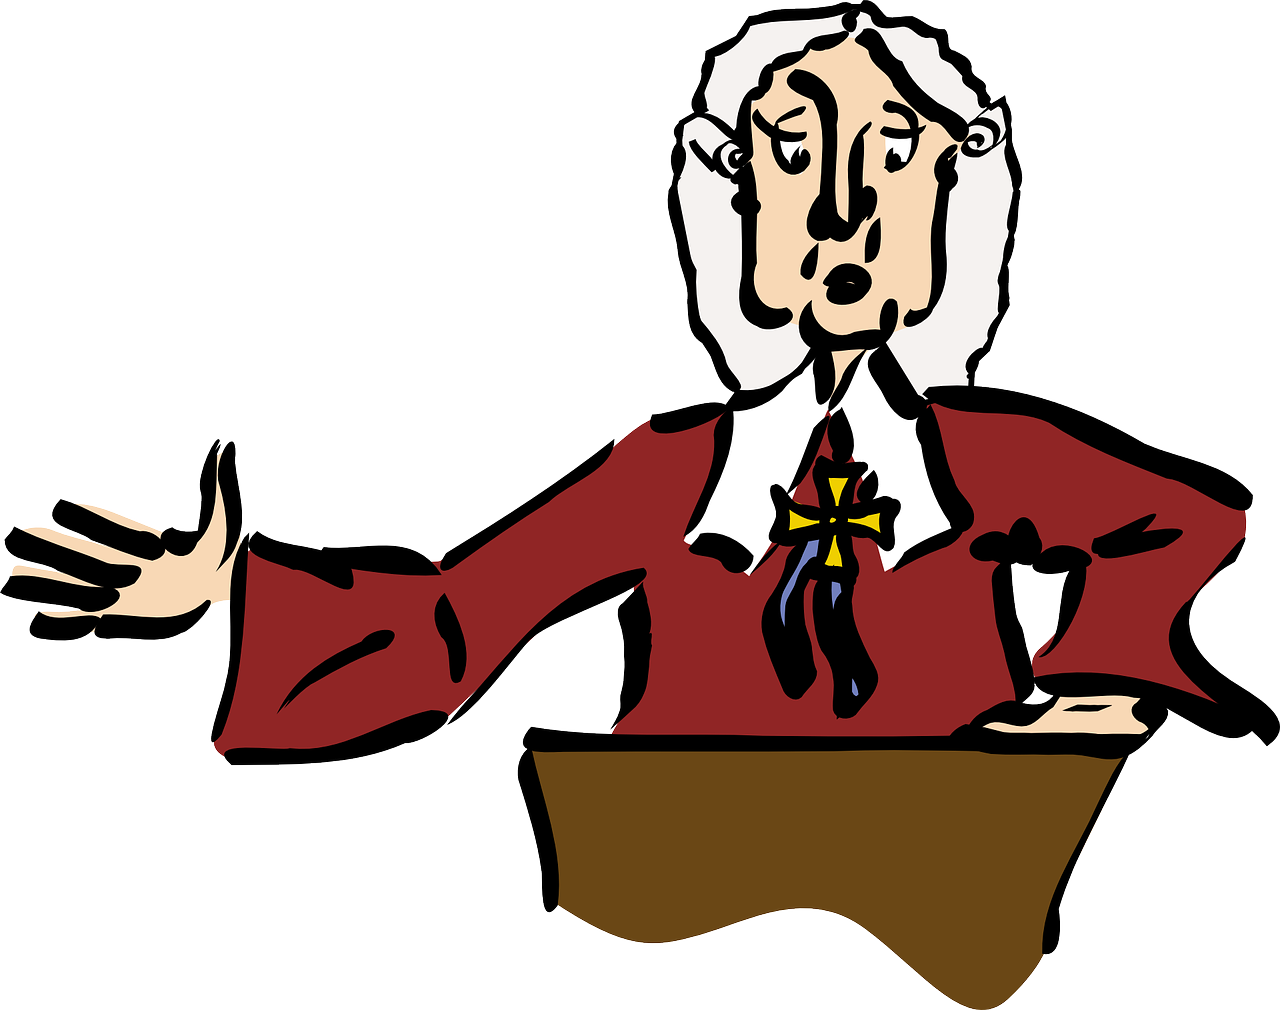 Your right to request. Evidence clipart reasonable